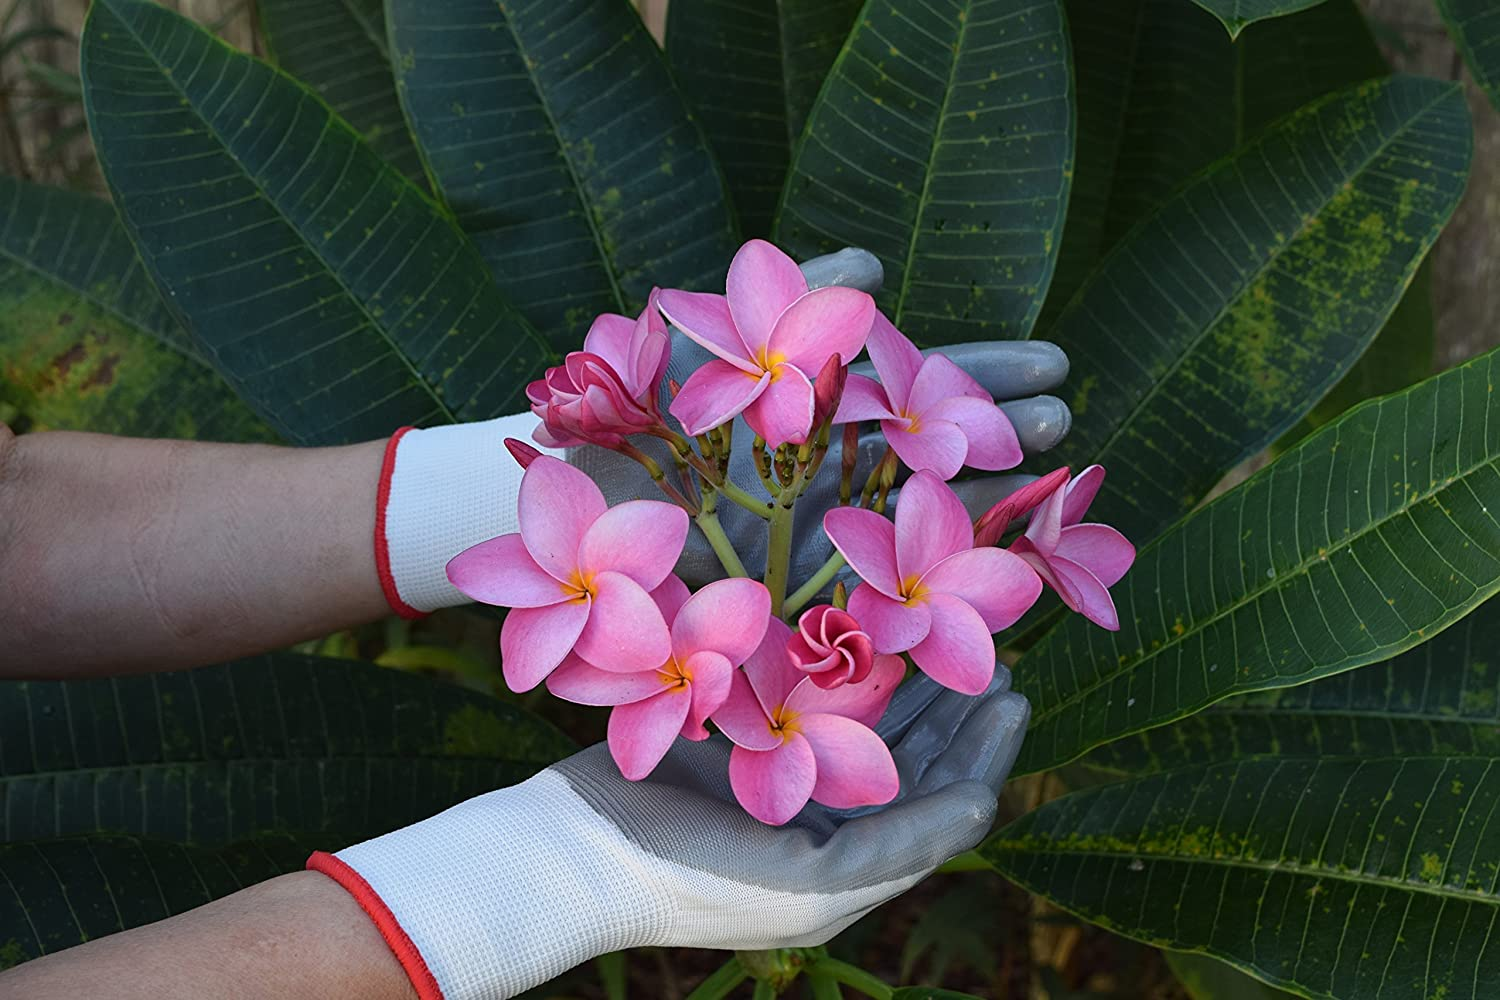 Best Gardening Gloves For Women - Premium-Gardening-Breathable-Scratches